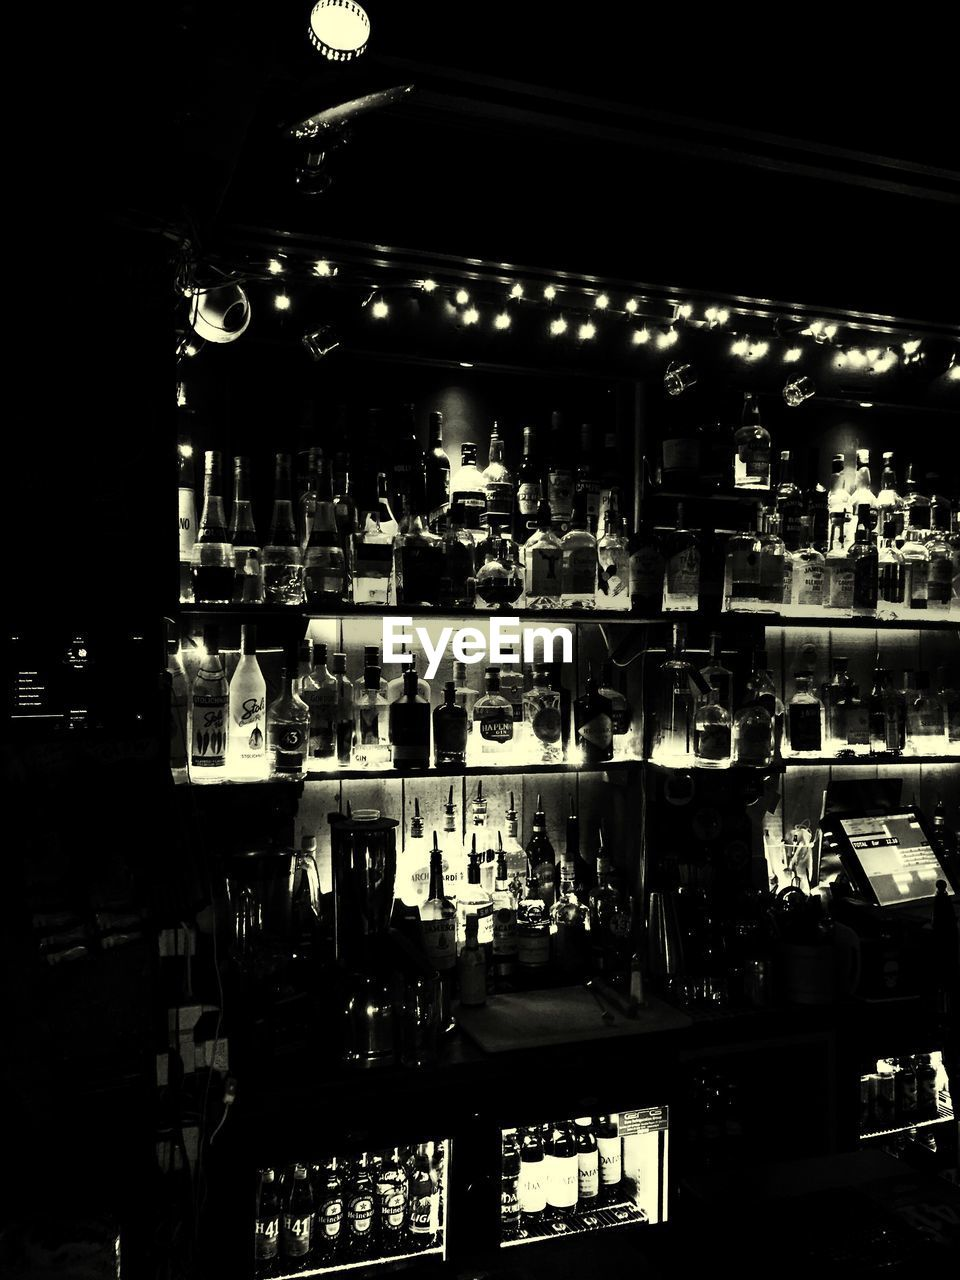 night, illuminated, indoors, store, shelf, bottle, retail, bar - drink establishment, no people, nightlife, alcohol, nightclub